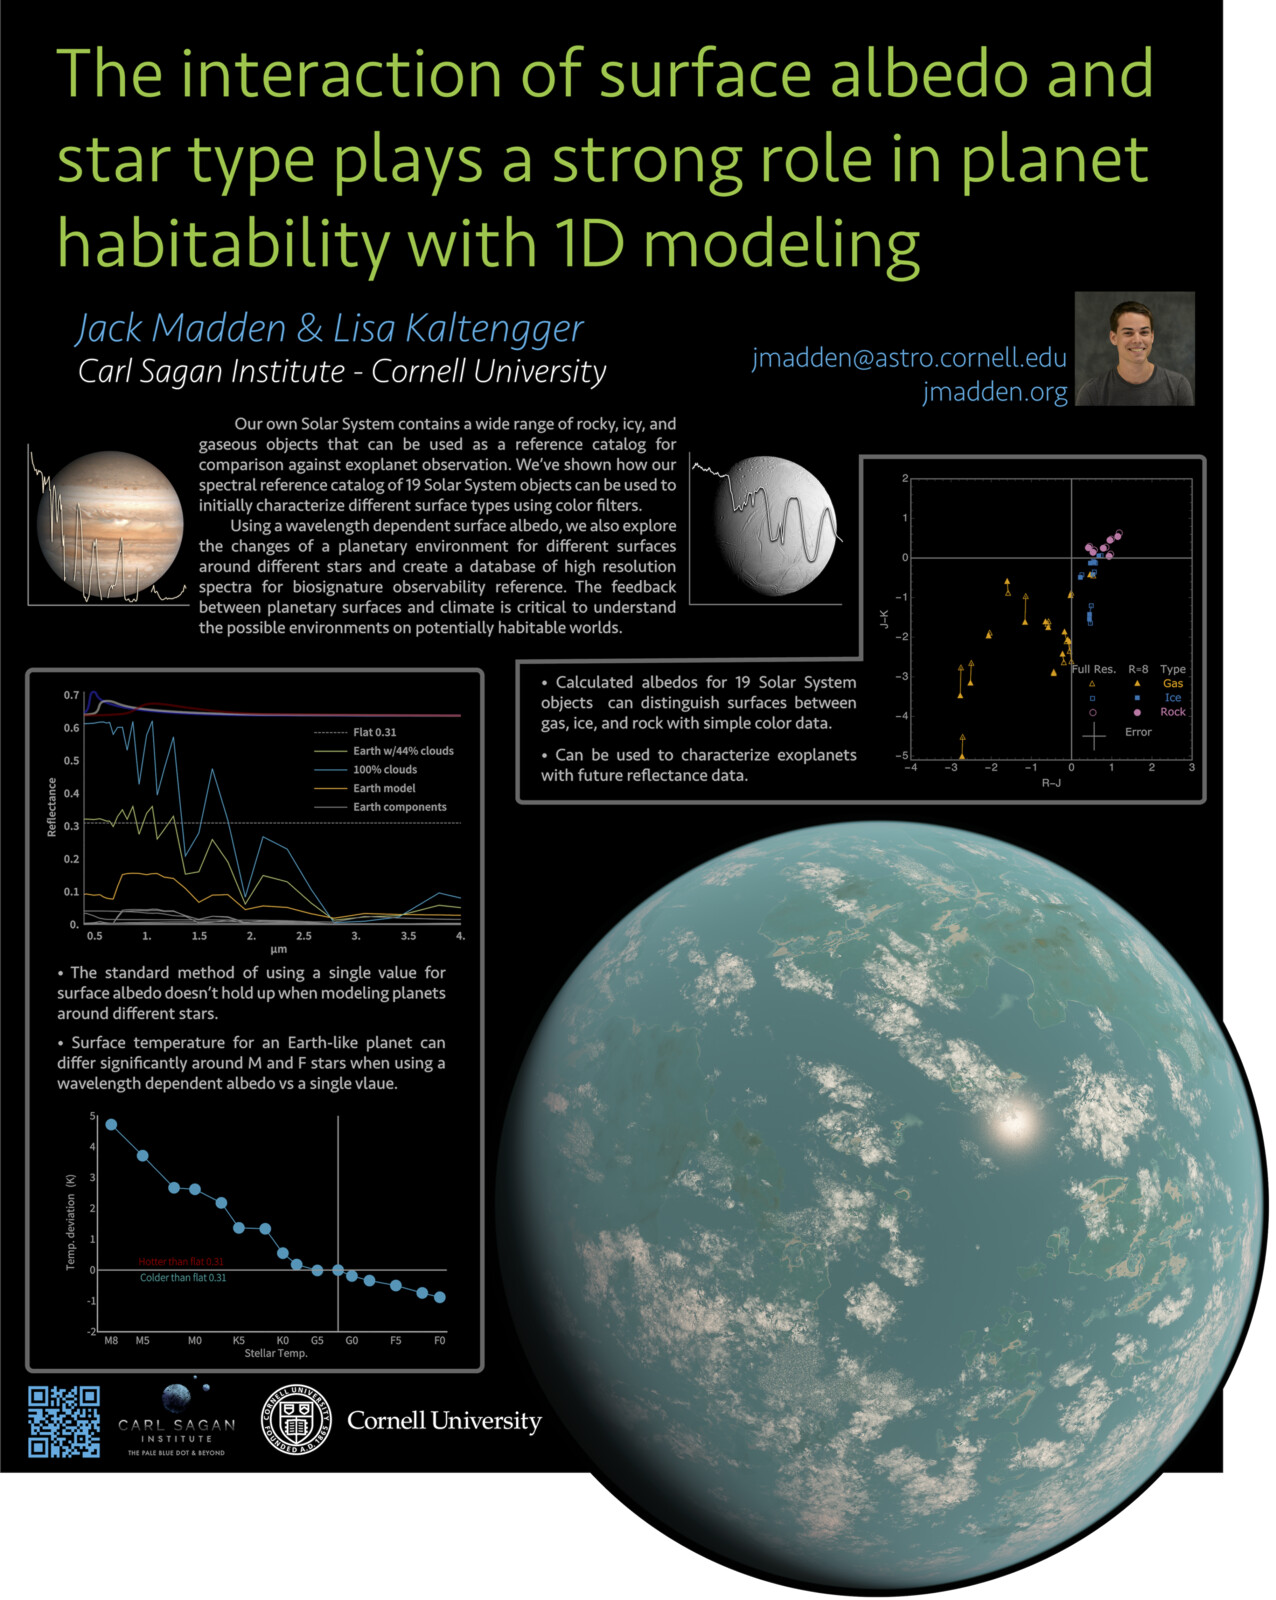 [Poster] The Interaction of Surface Albedo and Star Type on Planet Habitability